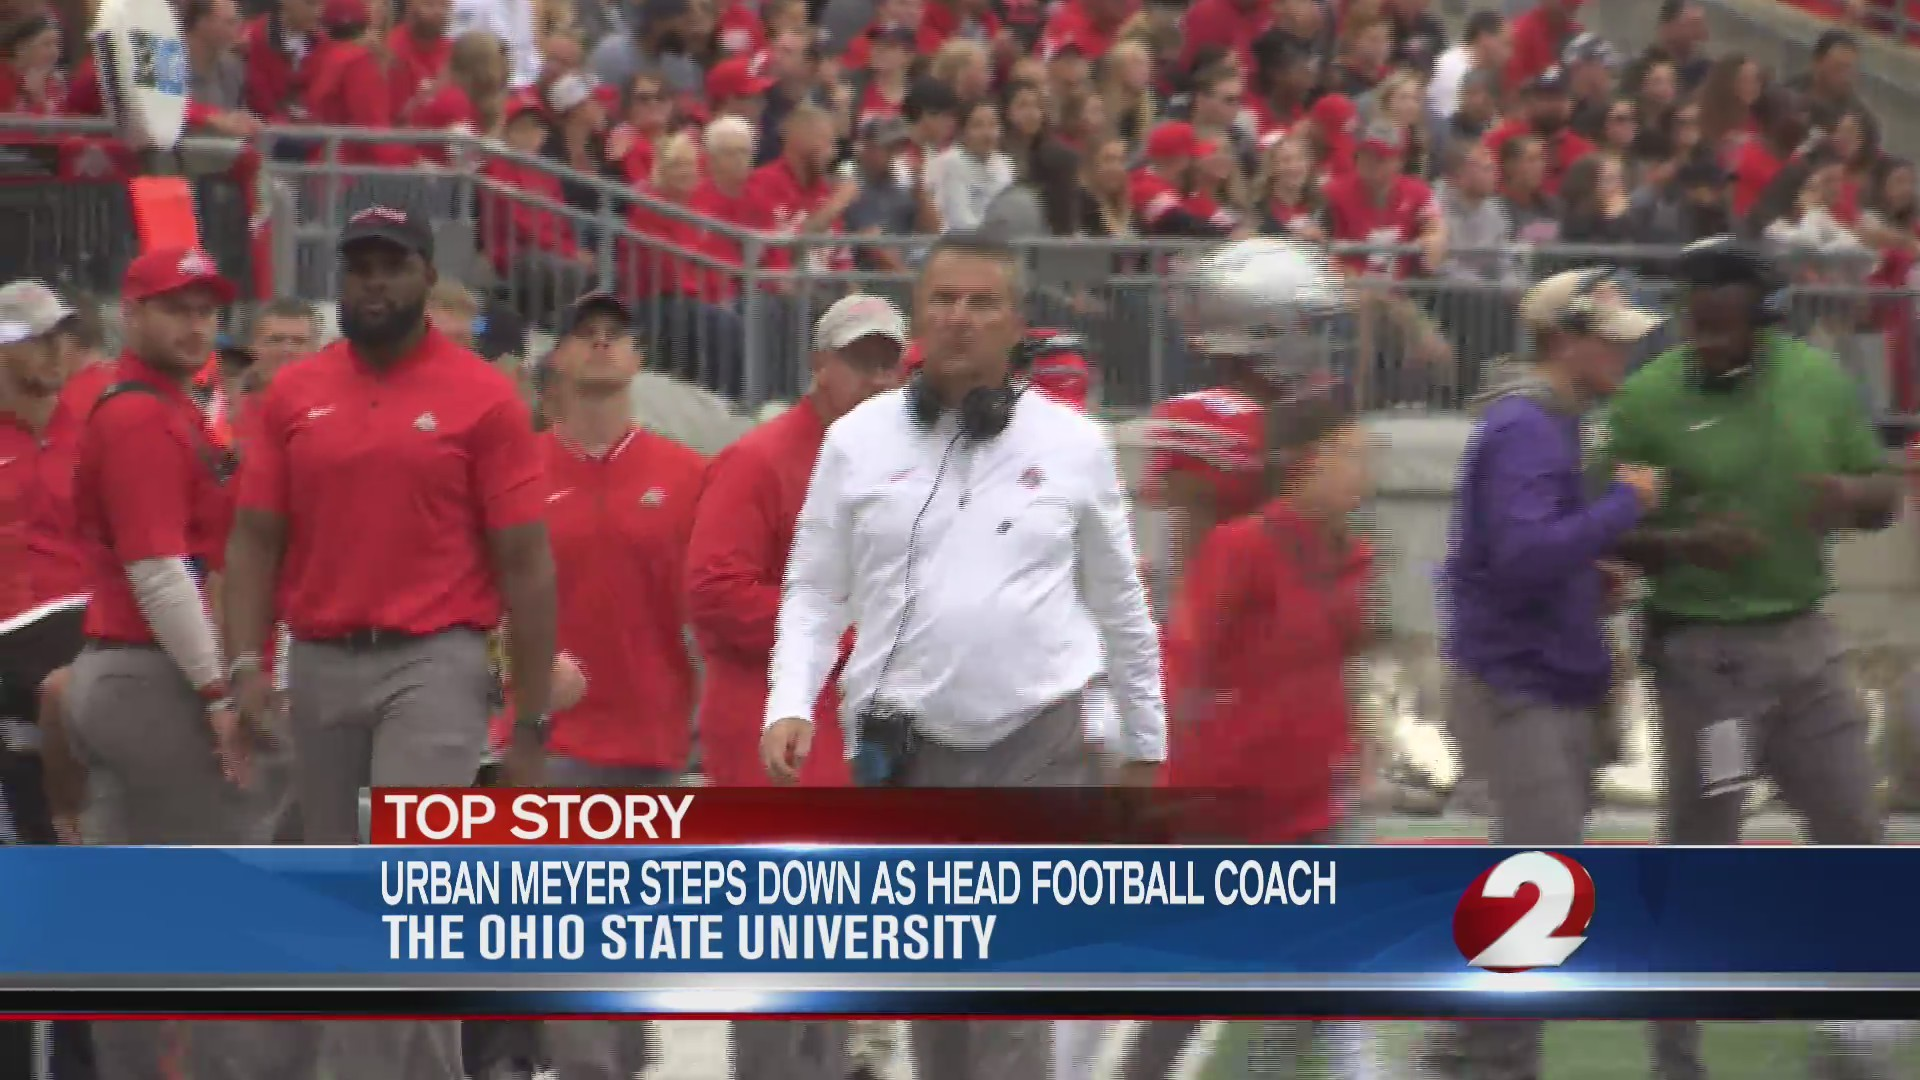 Urban Meyer steps down as head football coach